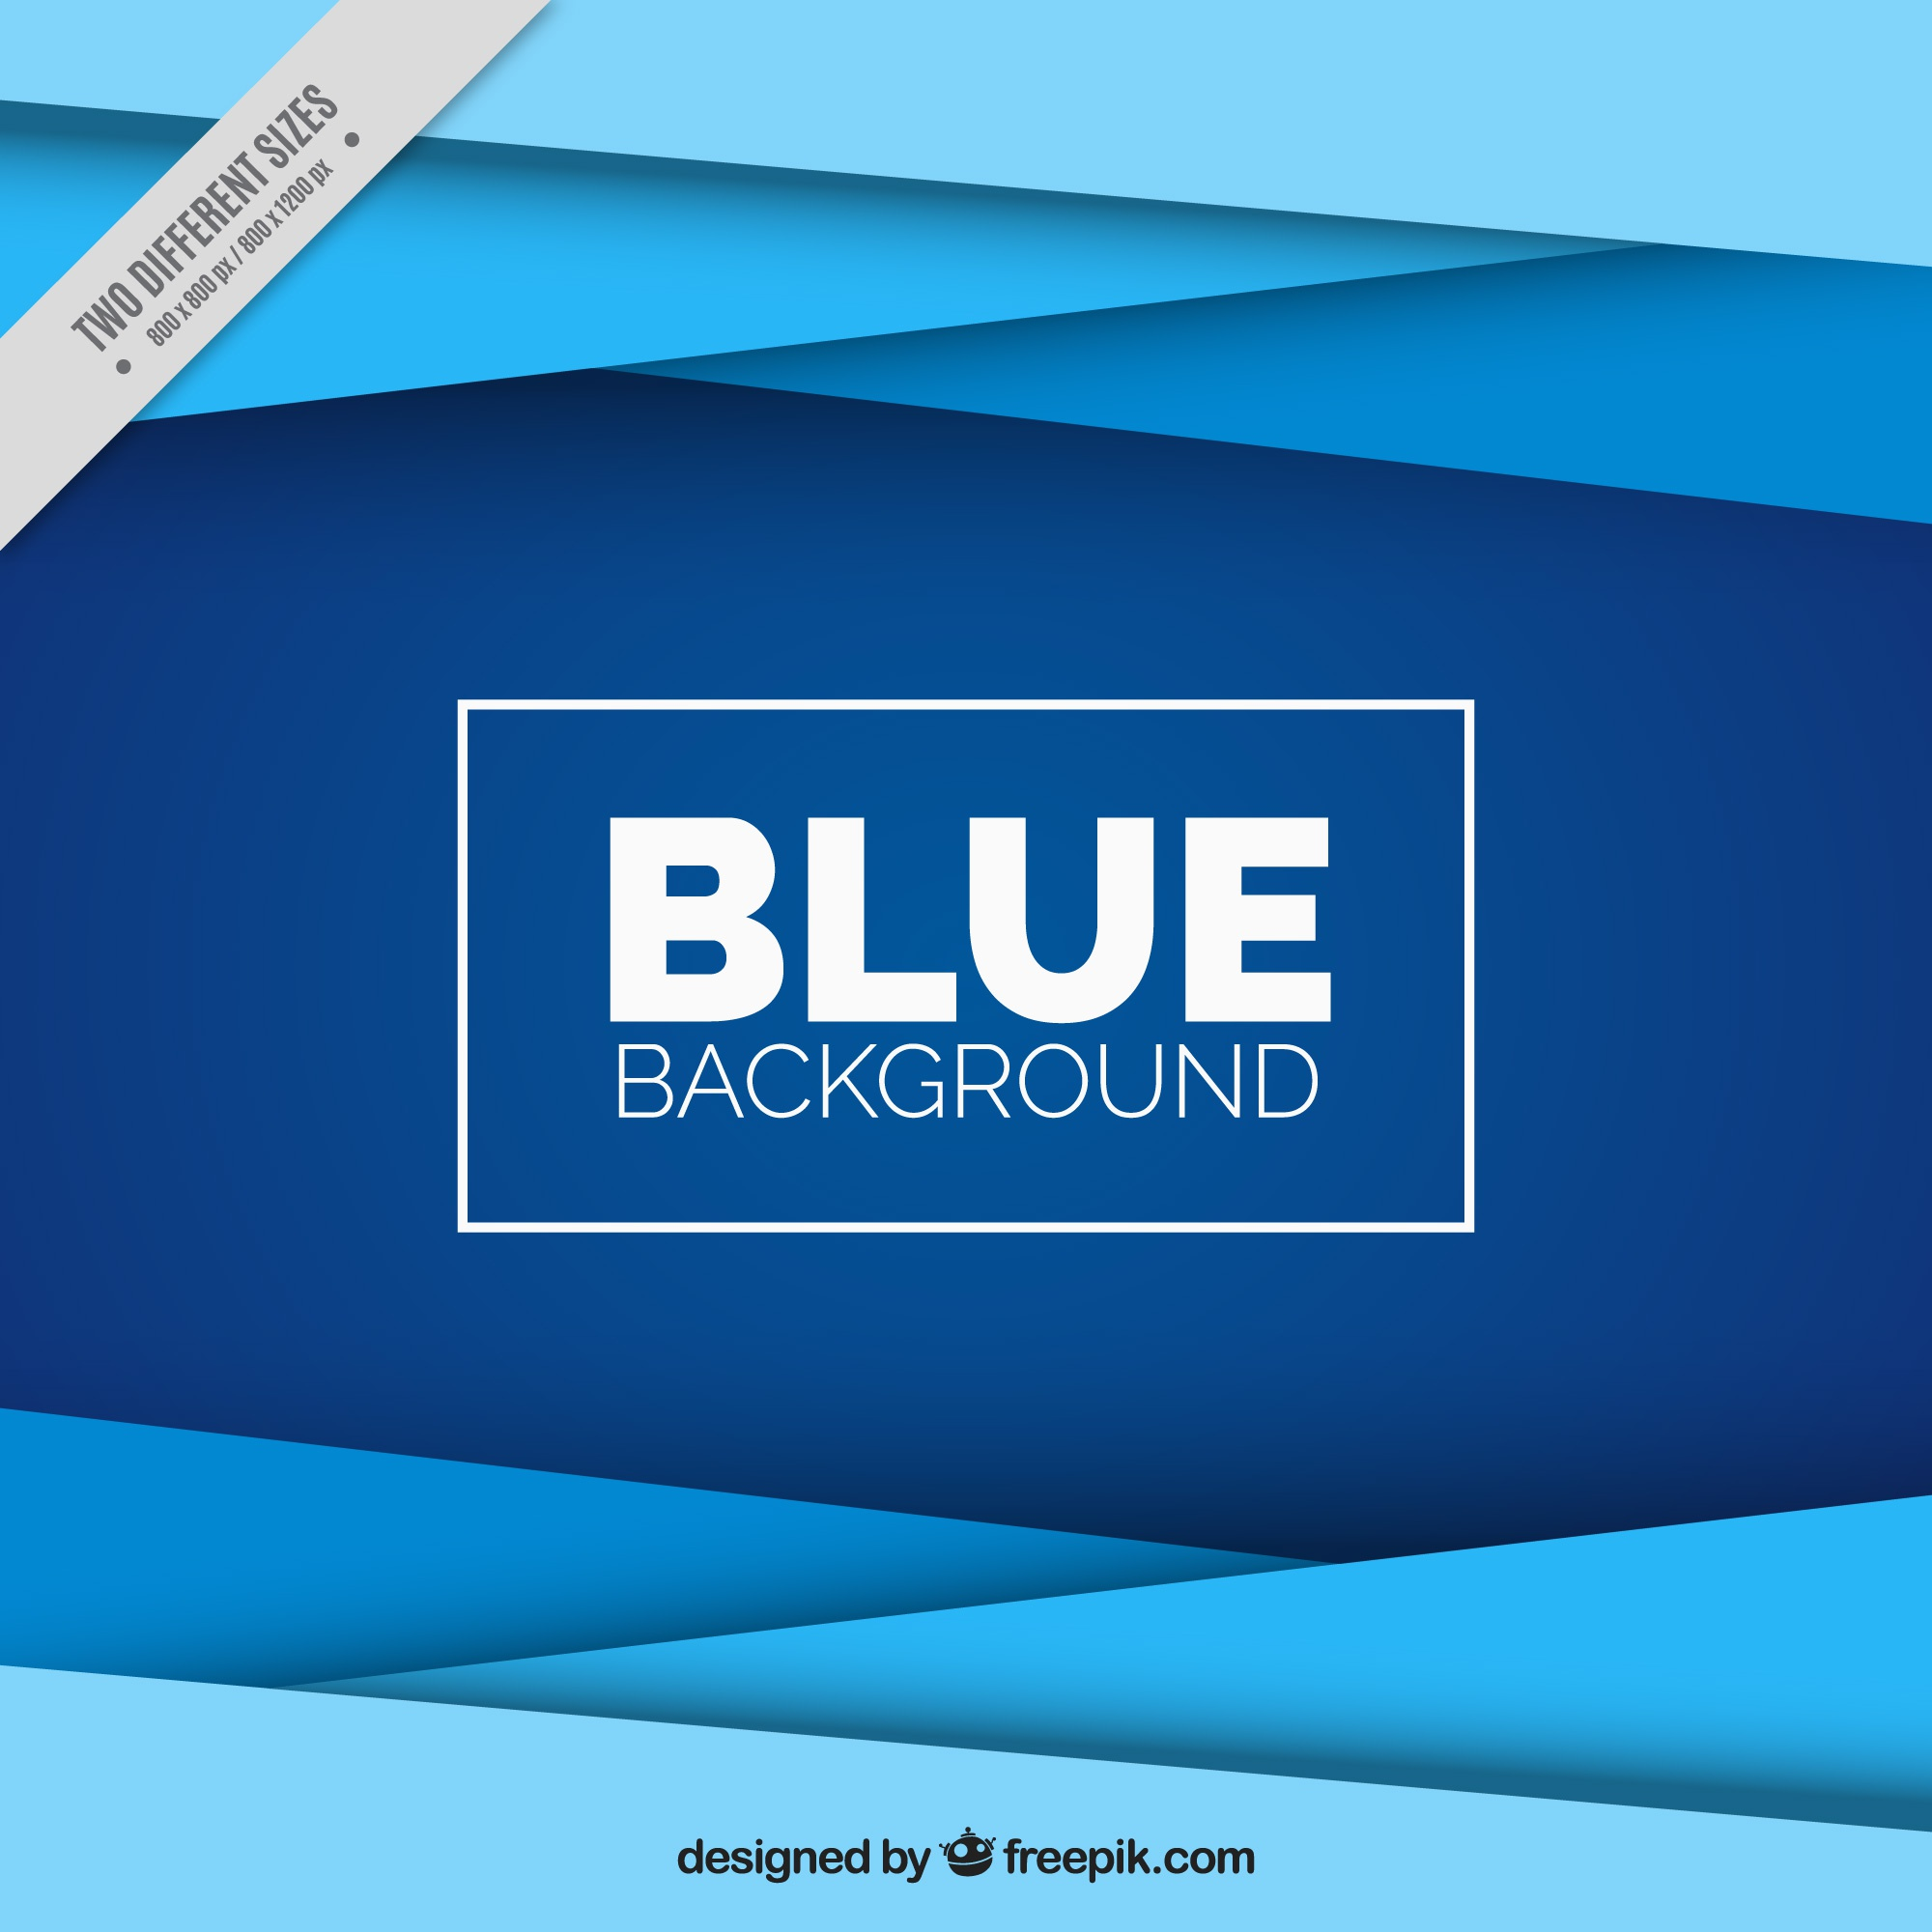 Fantastic background with geometric forms in blue tones